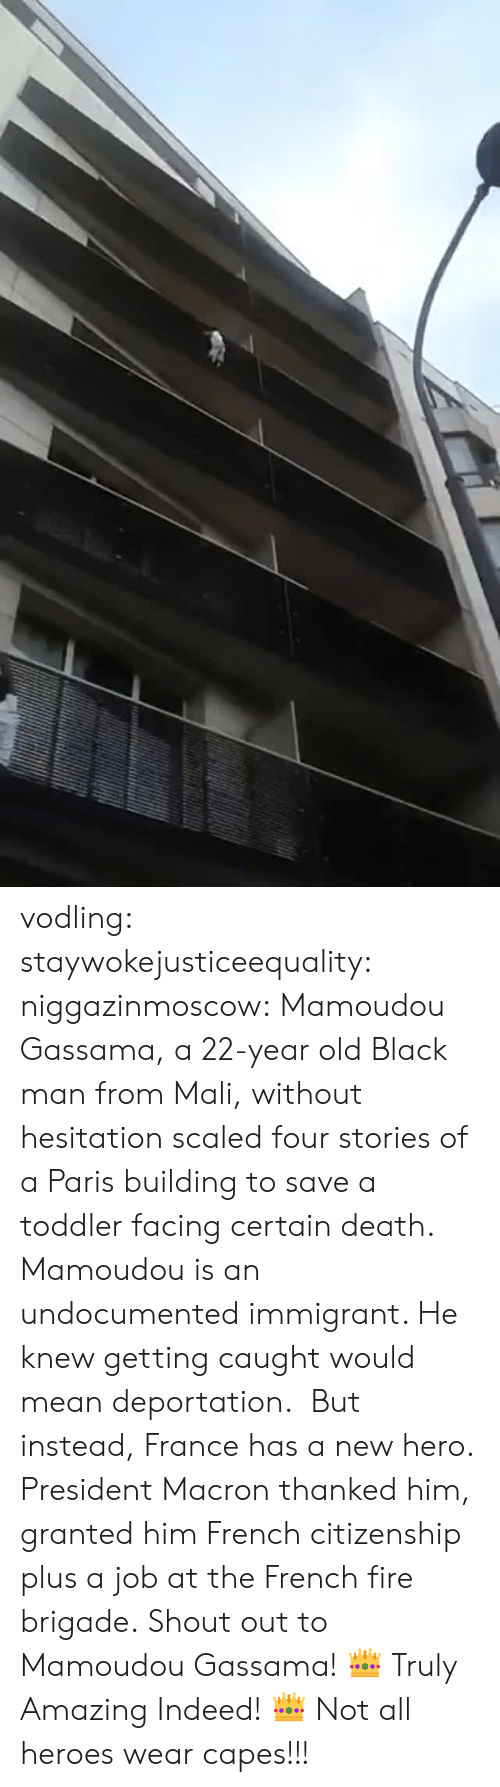 Deportation: vodling:  staywokejusticeequality:  niggazinmoscow:  Mamoudou Gassama, a 22-year old Black man from Mali, without hesitation   scaled four stories of a Paris building to save a toddler facing certain death. Mamoudou is an undocumented immigrant. He knew getting caught would mean deportation. But instead, France has a new hero. President Macron thanked him, granted him French citizenship plus a job at the French fire brigade. Shout out to Mamoudou Gassama!    👑 Truly Amazing Indeed! 👑    Not all heroes wear capes!!!